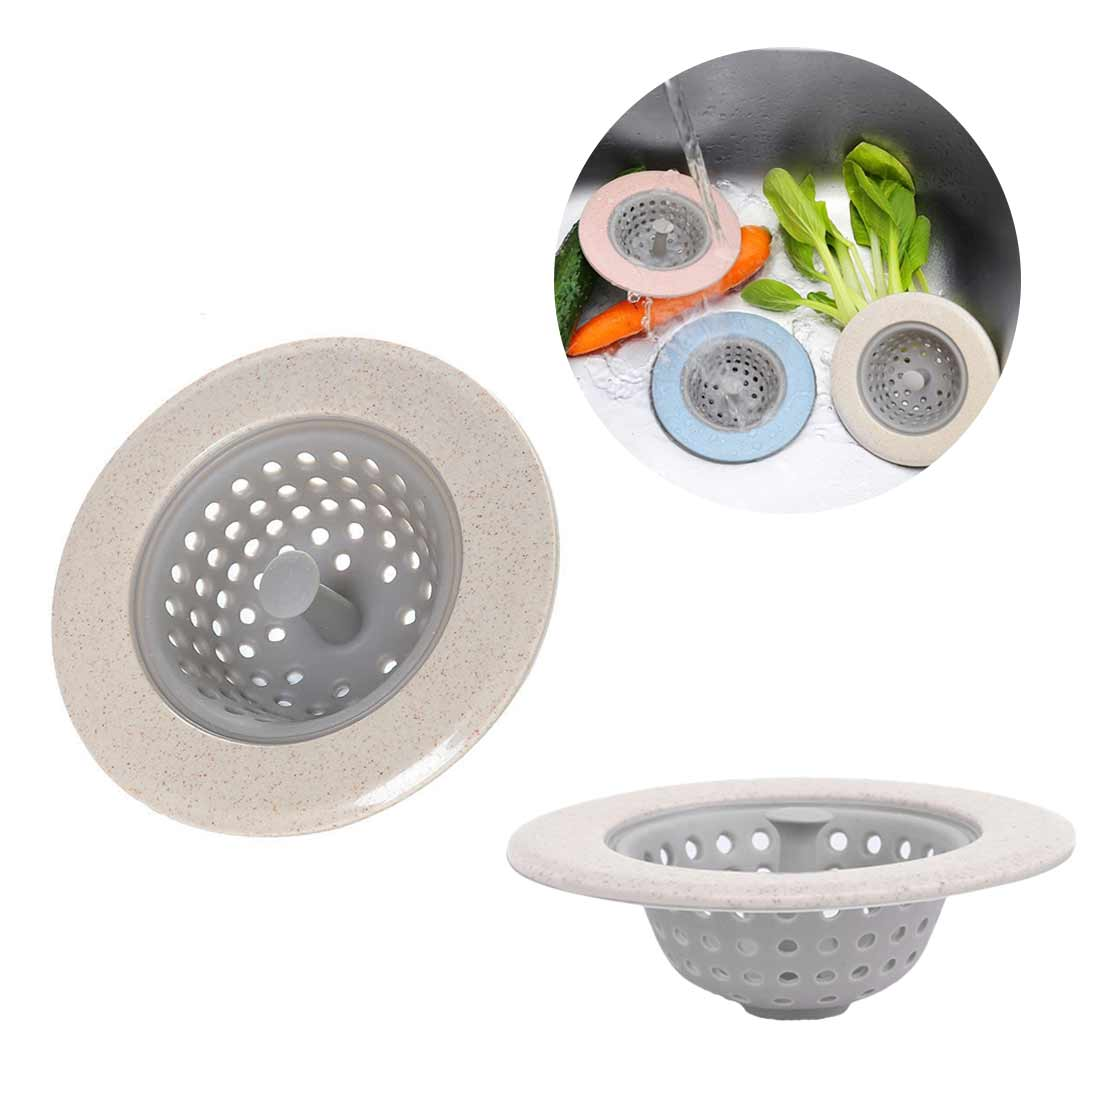 Kitchen Silicone Wheat Sink Strainers Filters Floor Sieve Drain Filter Mat Gadgets Mesh Sewer Hair Catch Bathroom Clean Tool